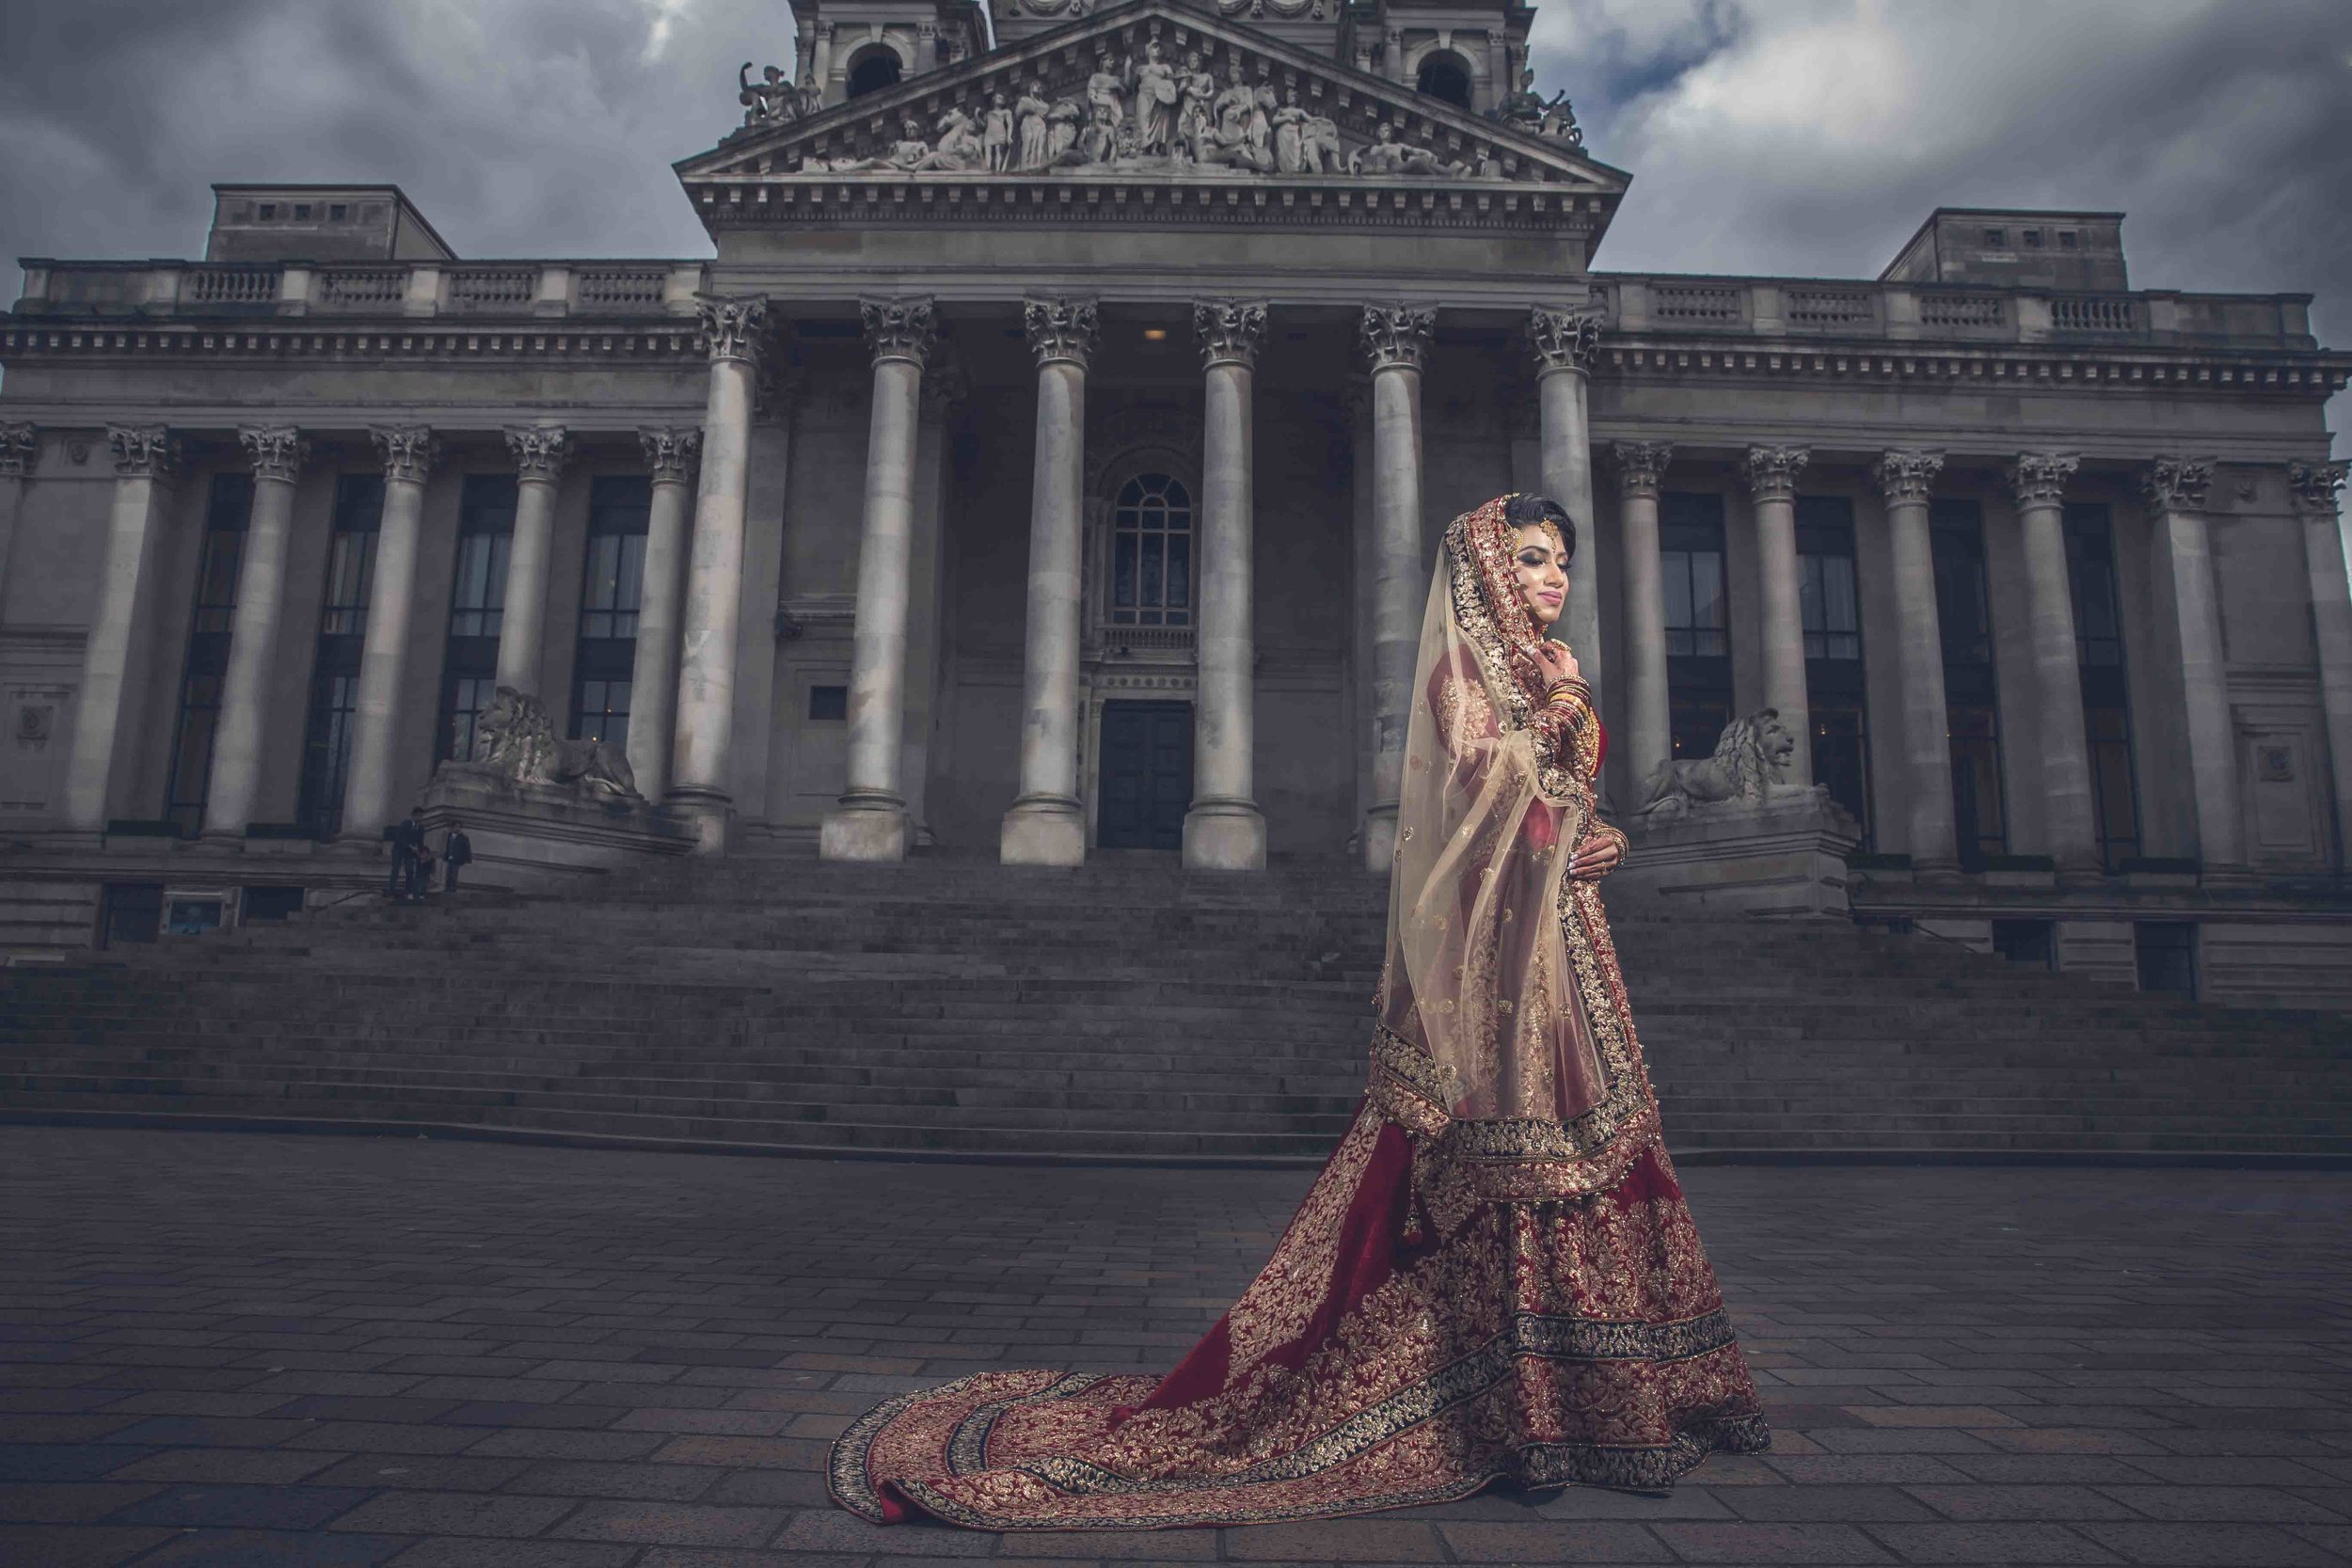 Asian Wedding Photographer Opu Sultan Photography portsmouth Scotland Edinburgh Glasgow London Manchester Liverpool Birmingham Wedding Photos prewed shoot Luko & Rujina Blog-17.jpg